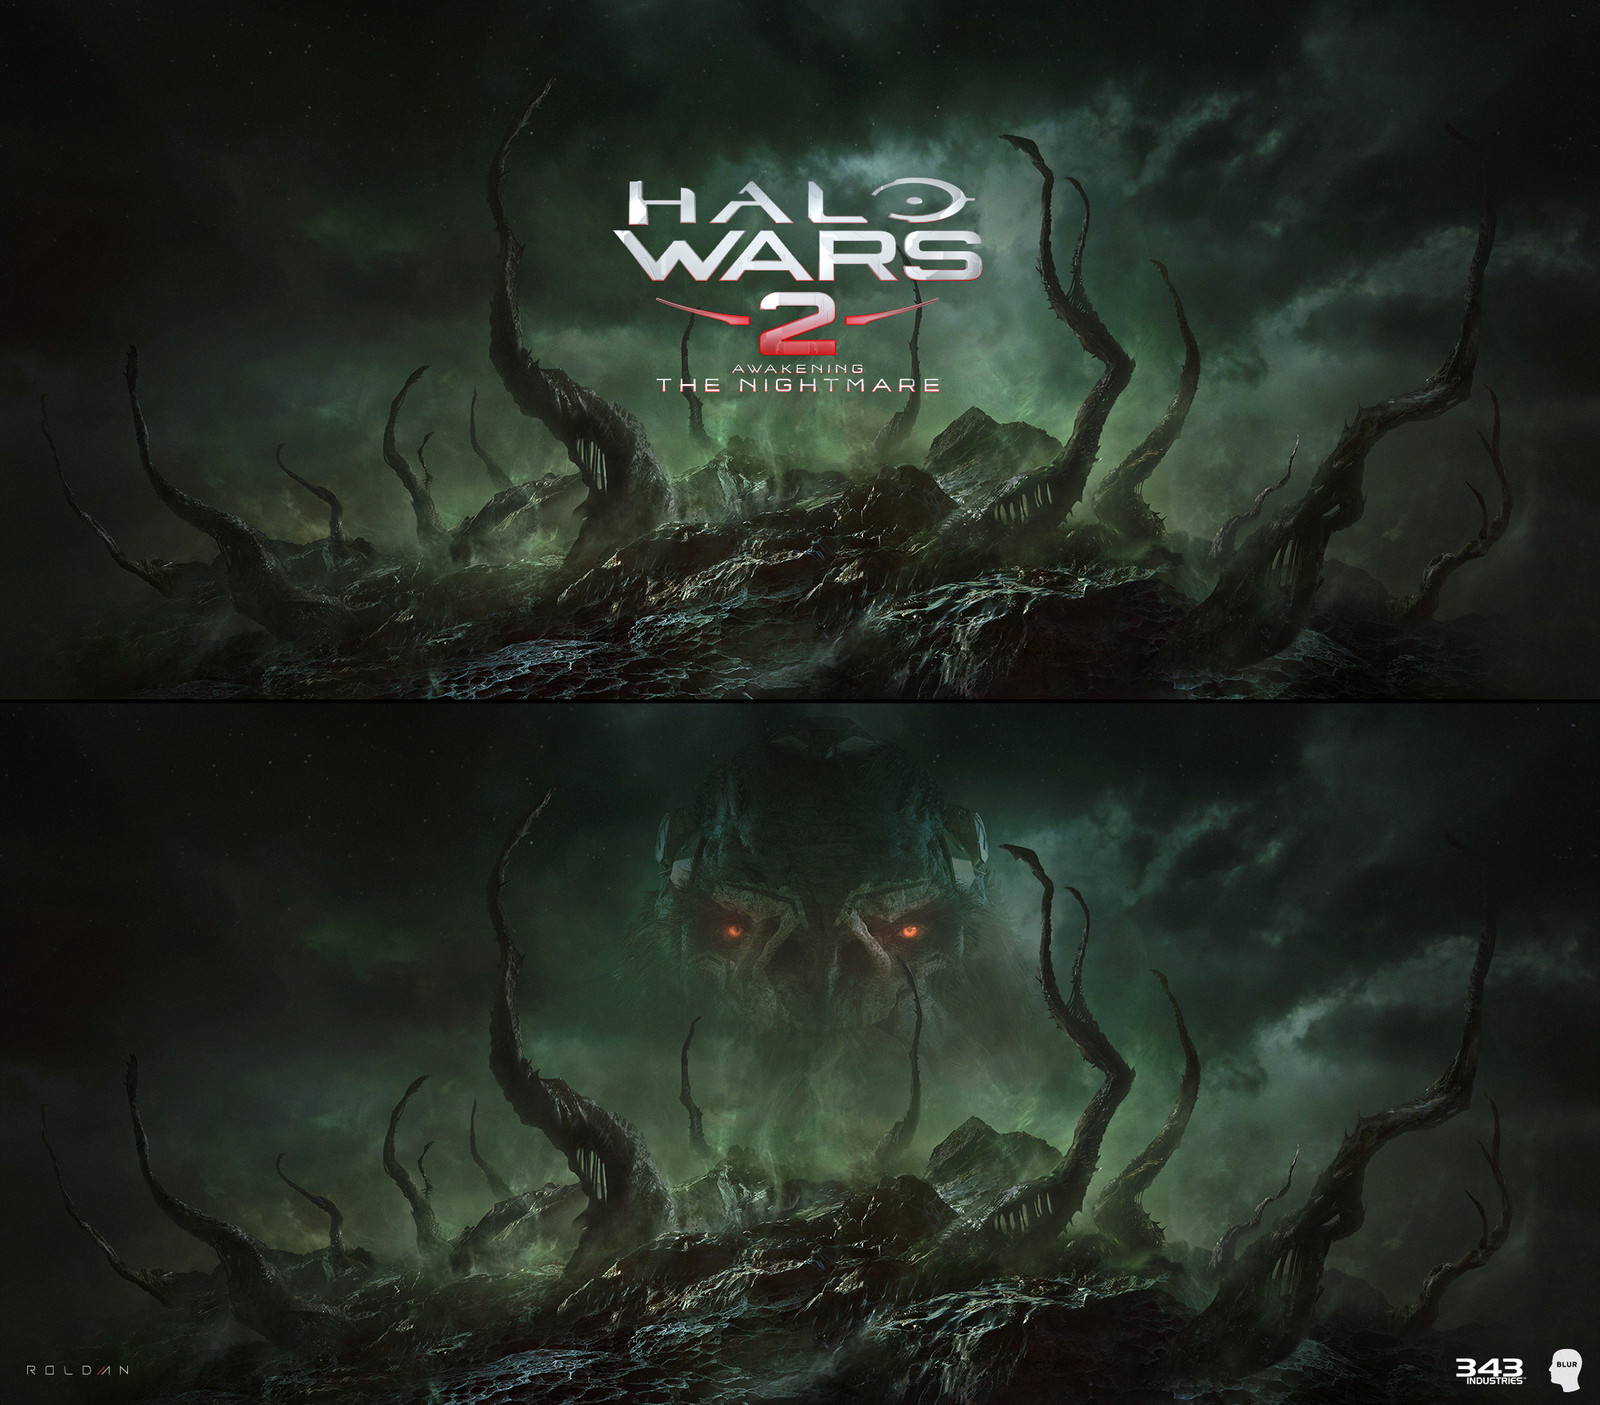 HALO WARS 2 - FLOOD BG